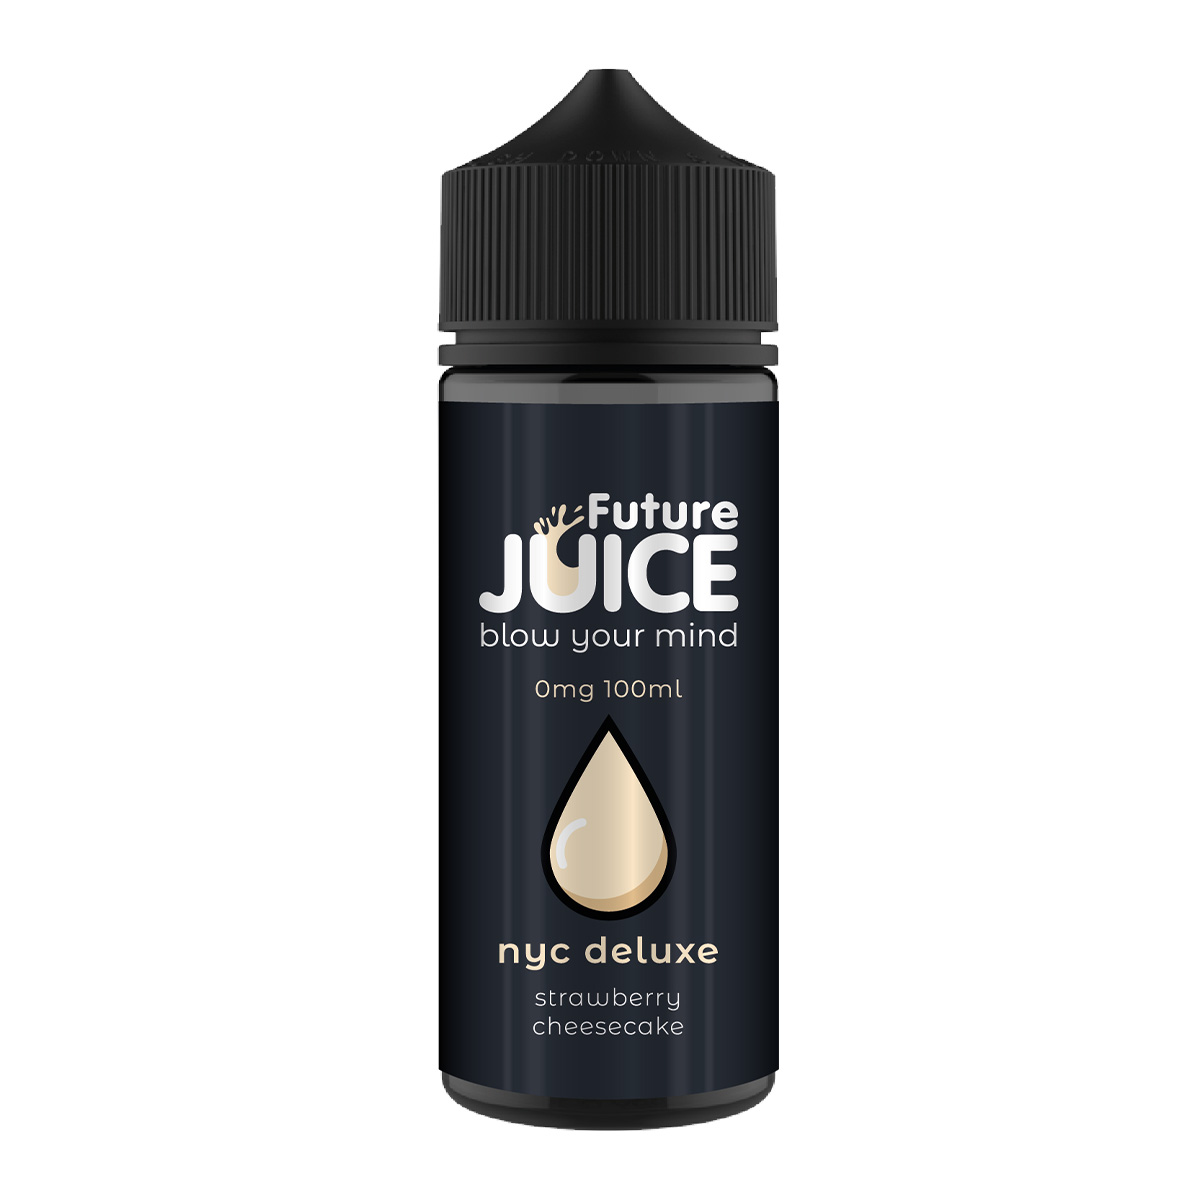 NYC DELUXE SHORTFILL BY FUTURE JUICE